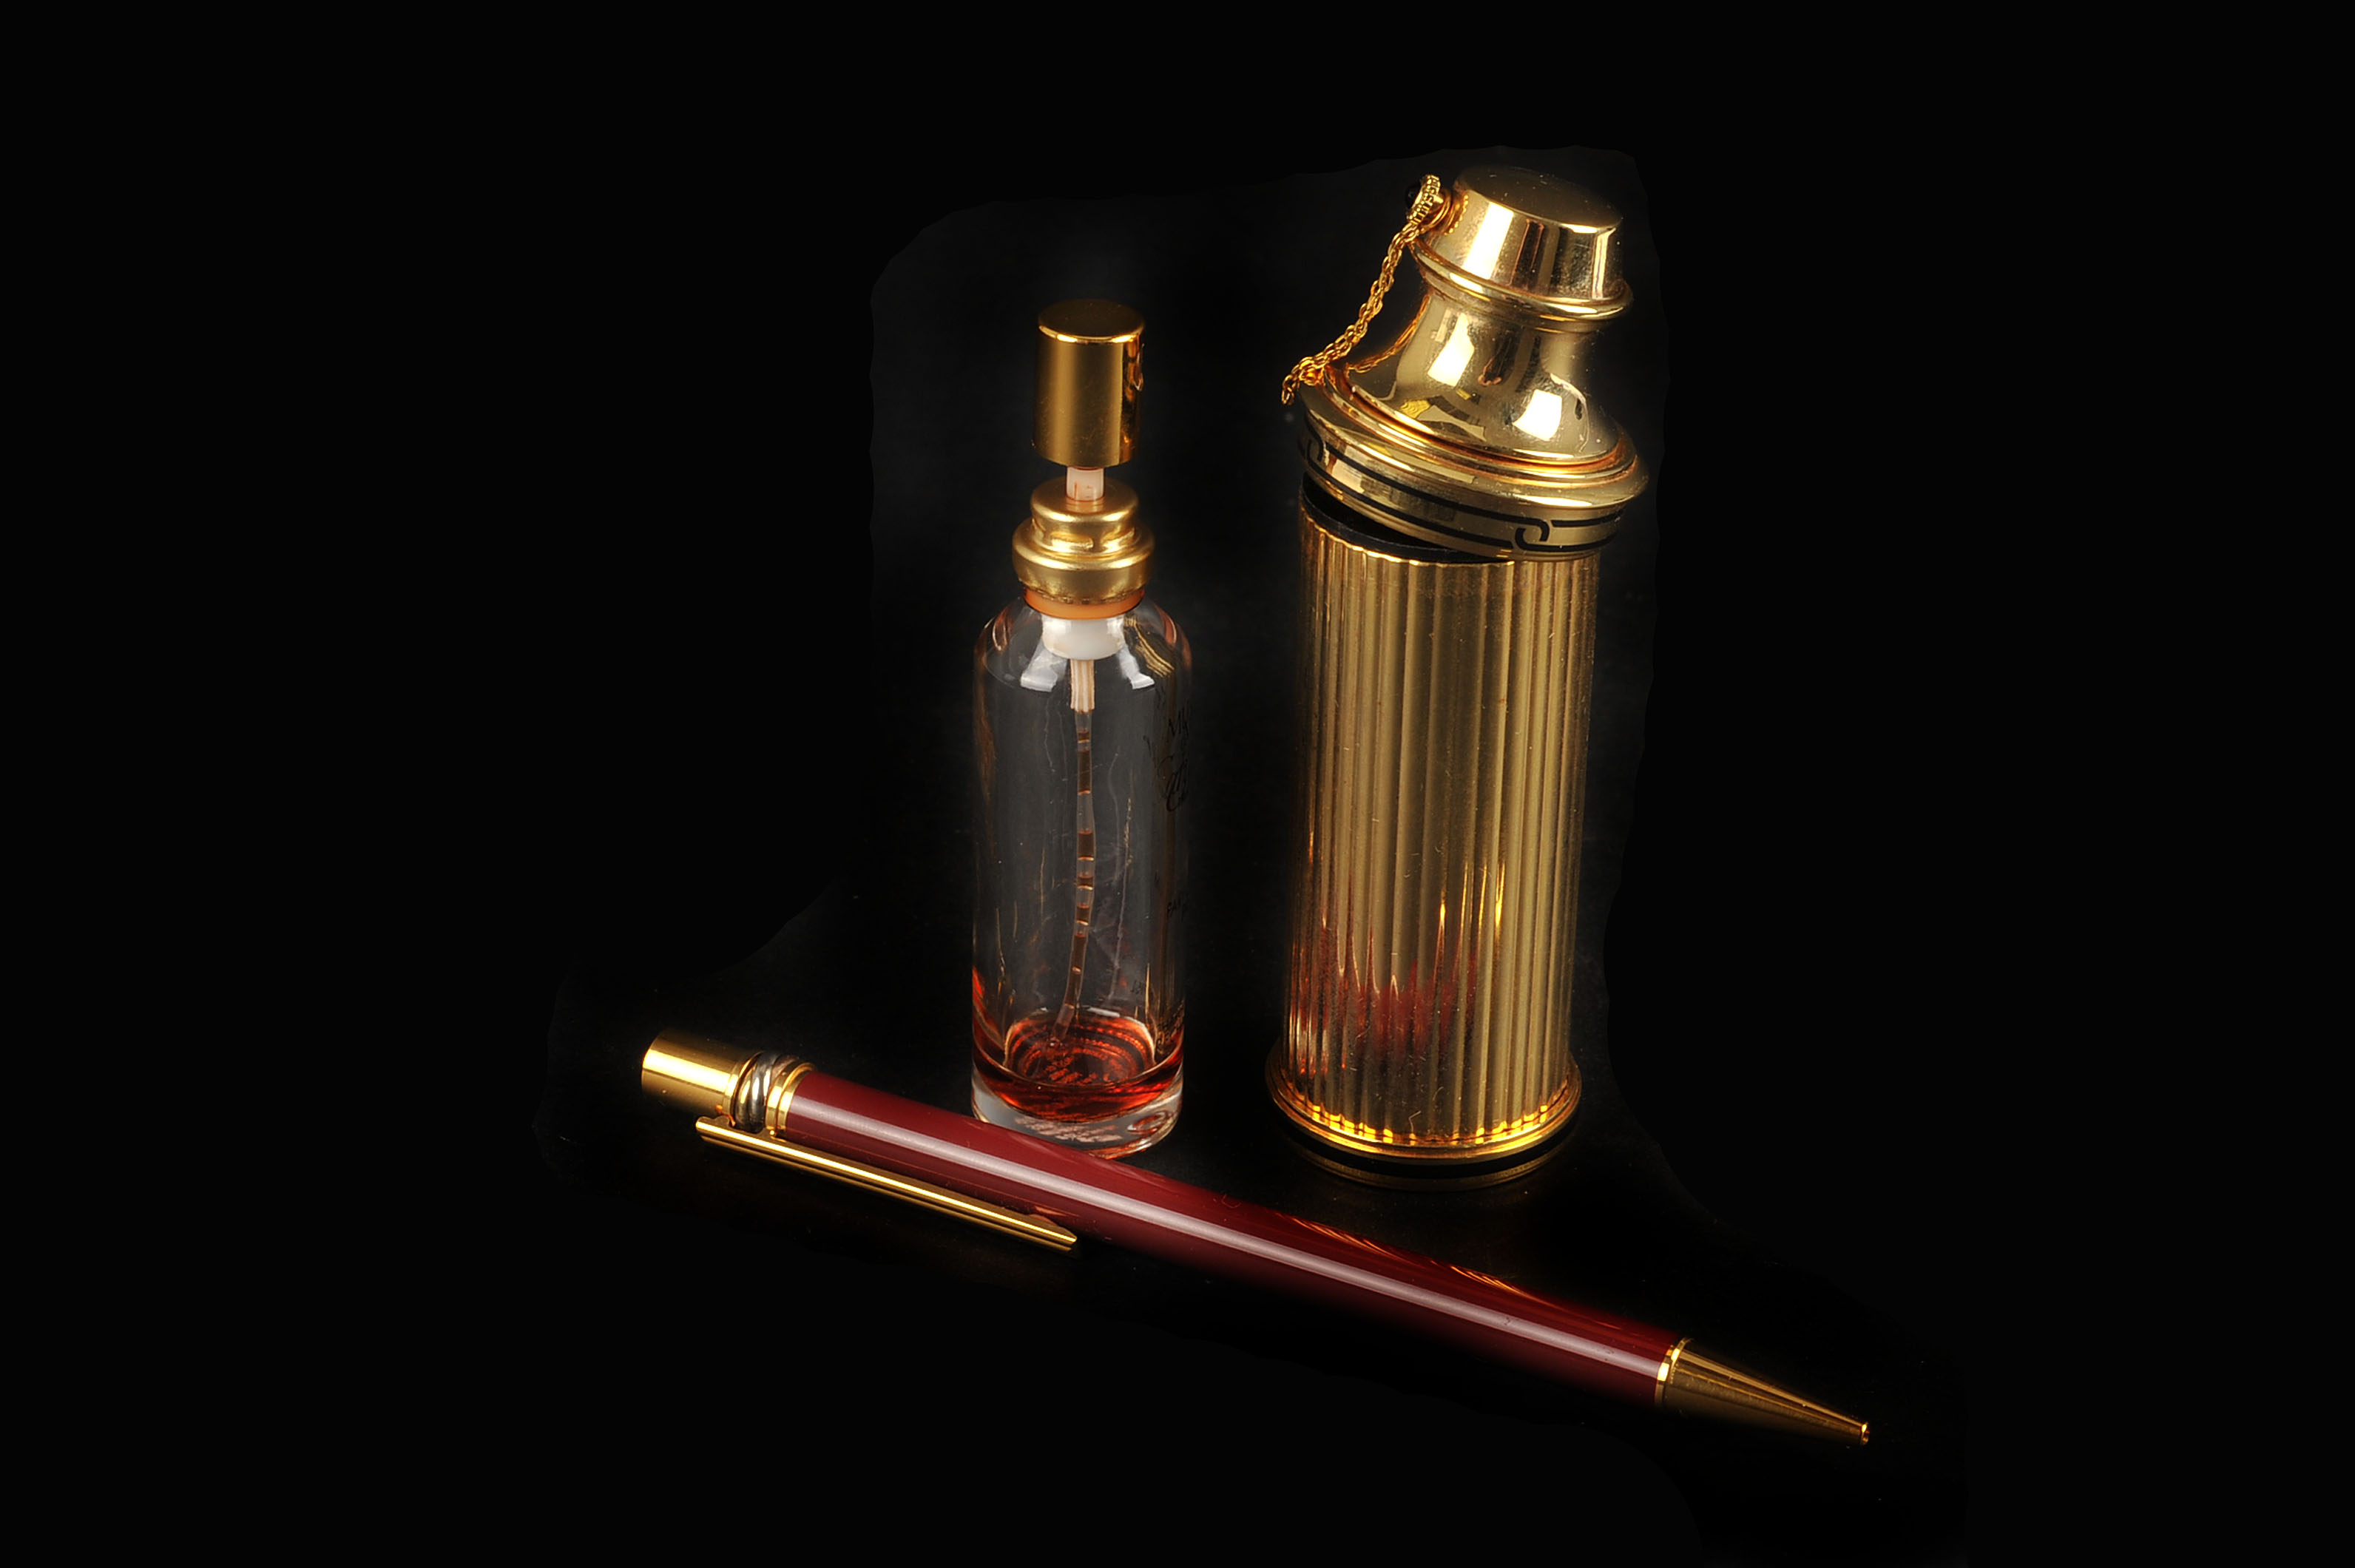 A Must De Cartier Perfume Atomiser Together With A Gold Plated And